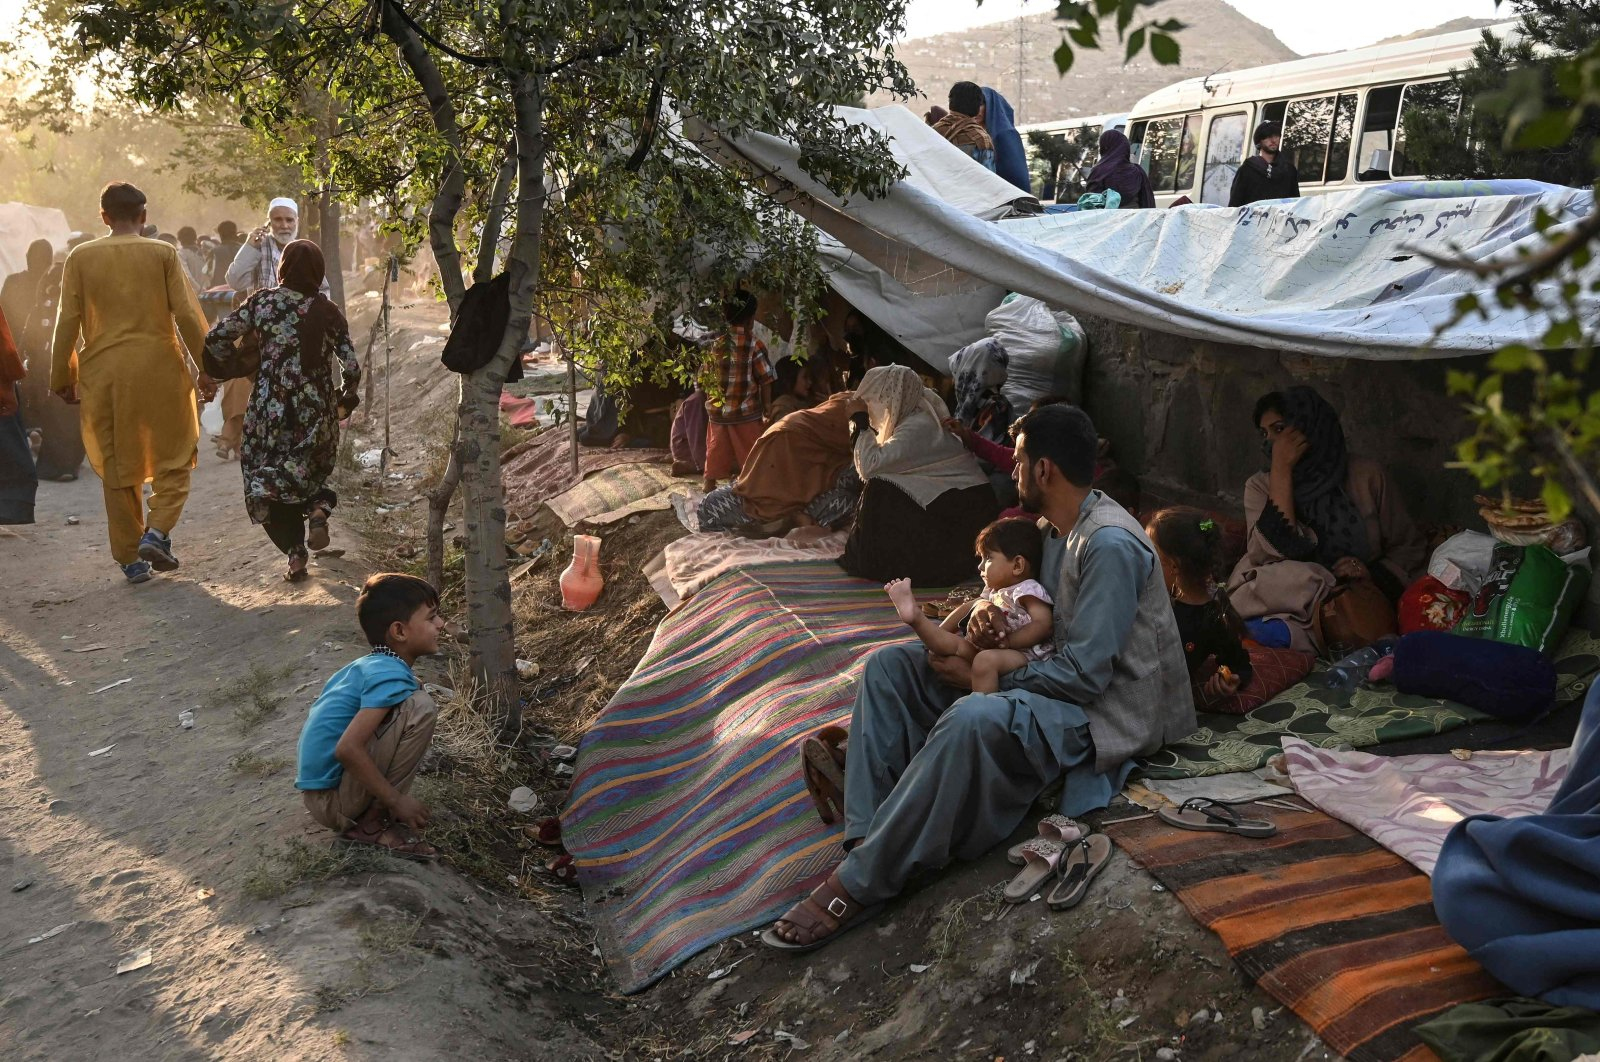 Internally displaced Afghan families, who fled from Kunduz, Takhar and Baghlan province due to battles between Taliban and Afghan security forces, sit in front of their temporary tents at Sara-e-Shamali in Kabul, Afghanistan on Aug. 11, 2021. (AFP Photo)